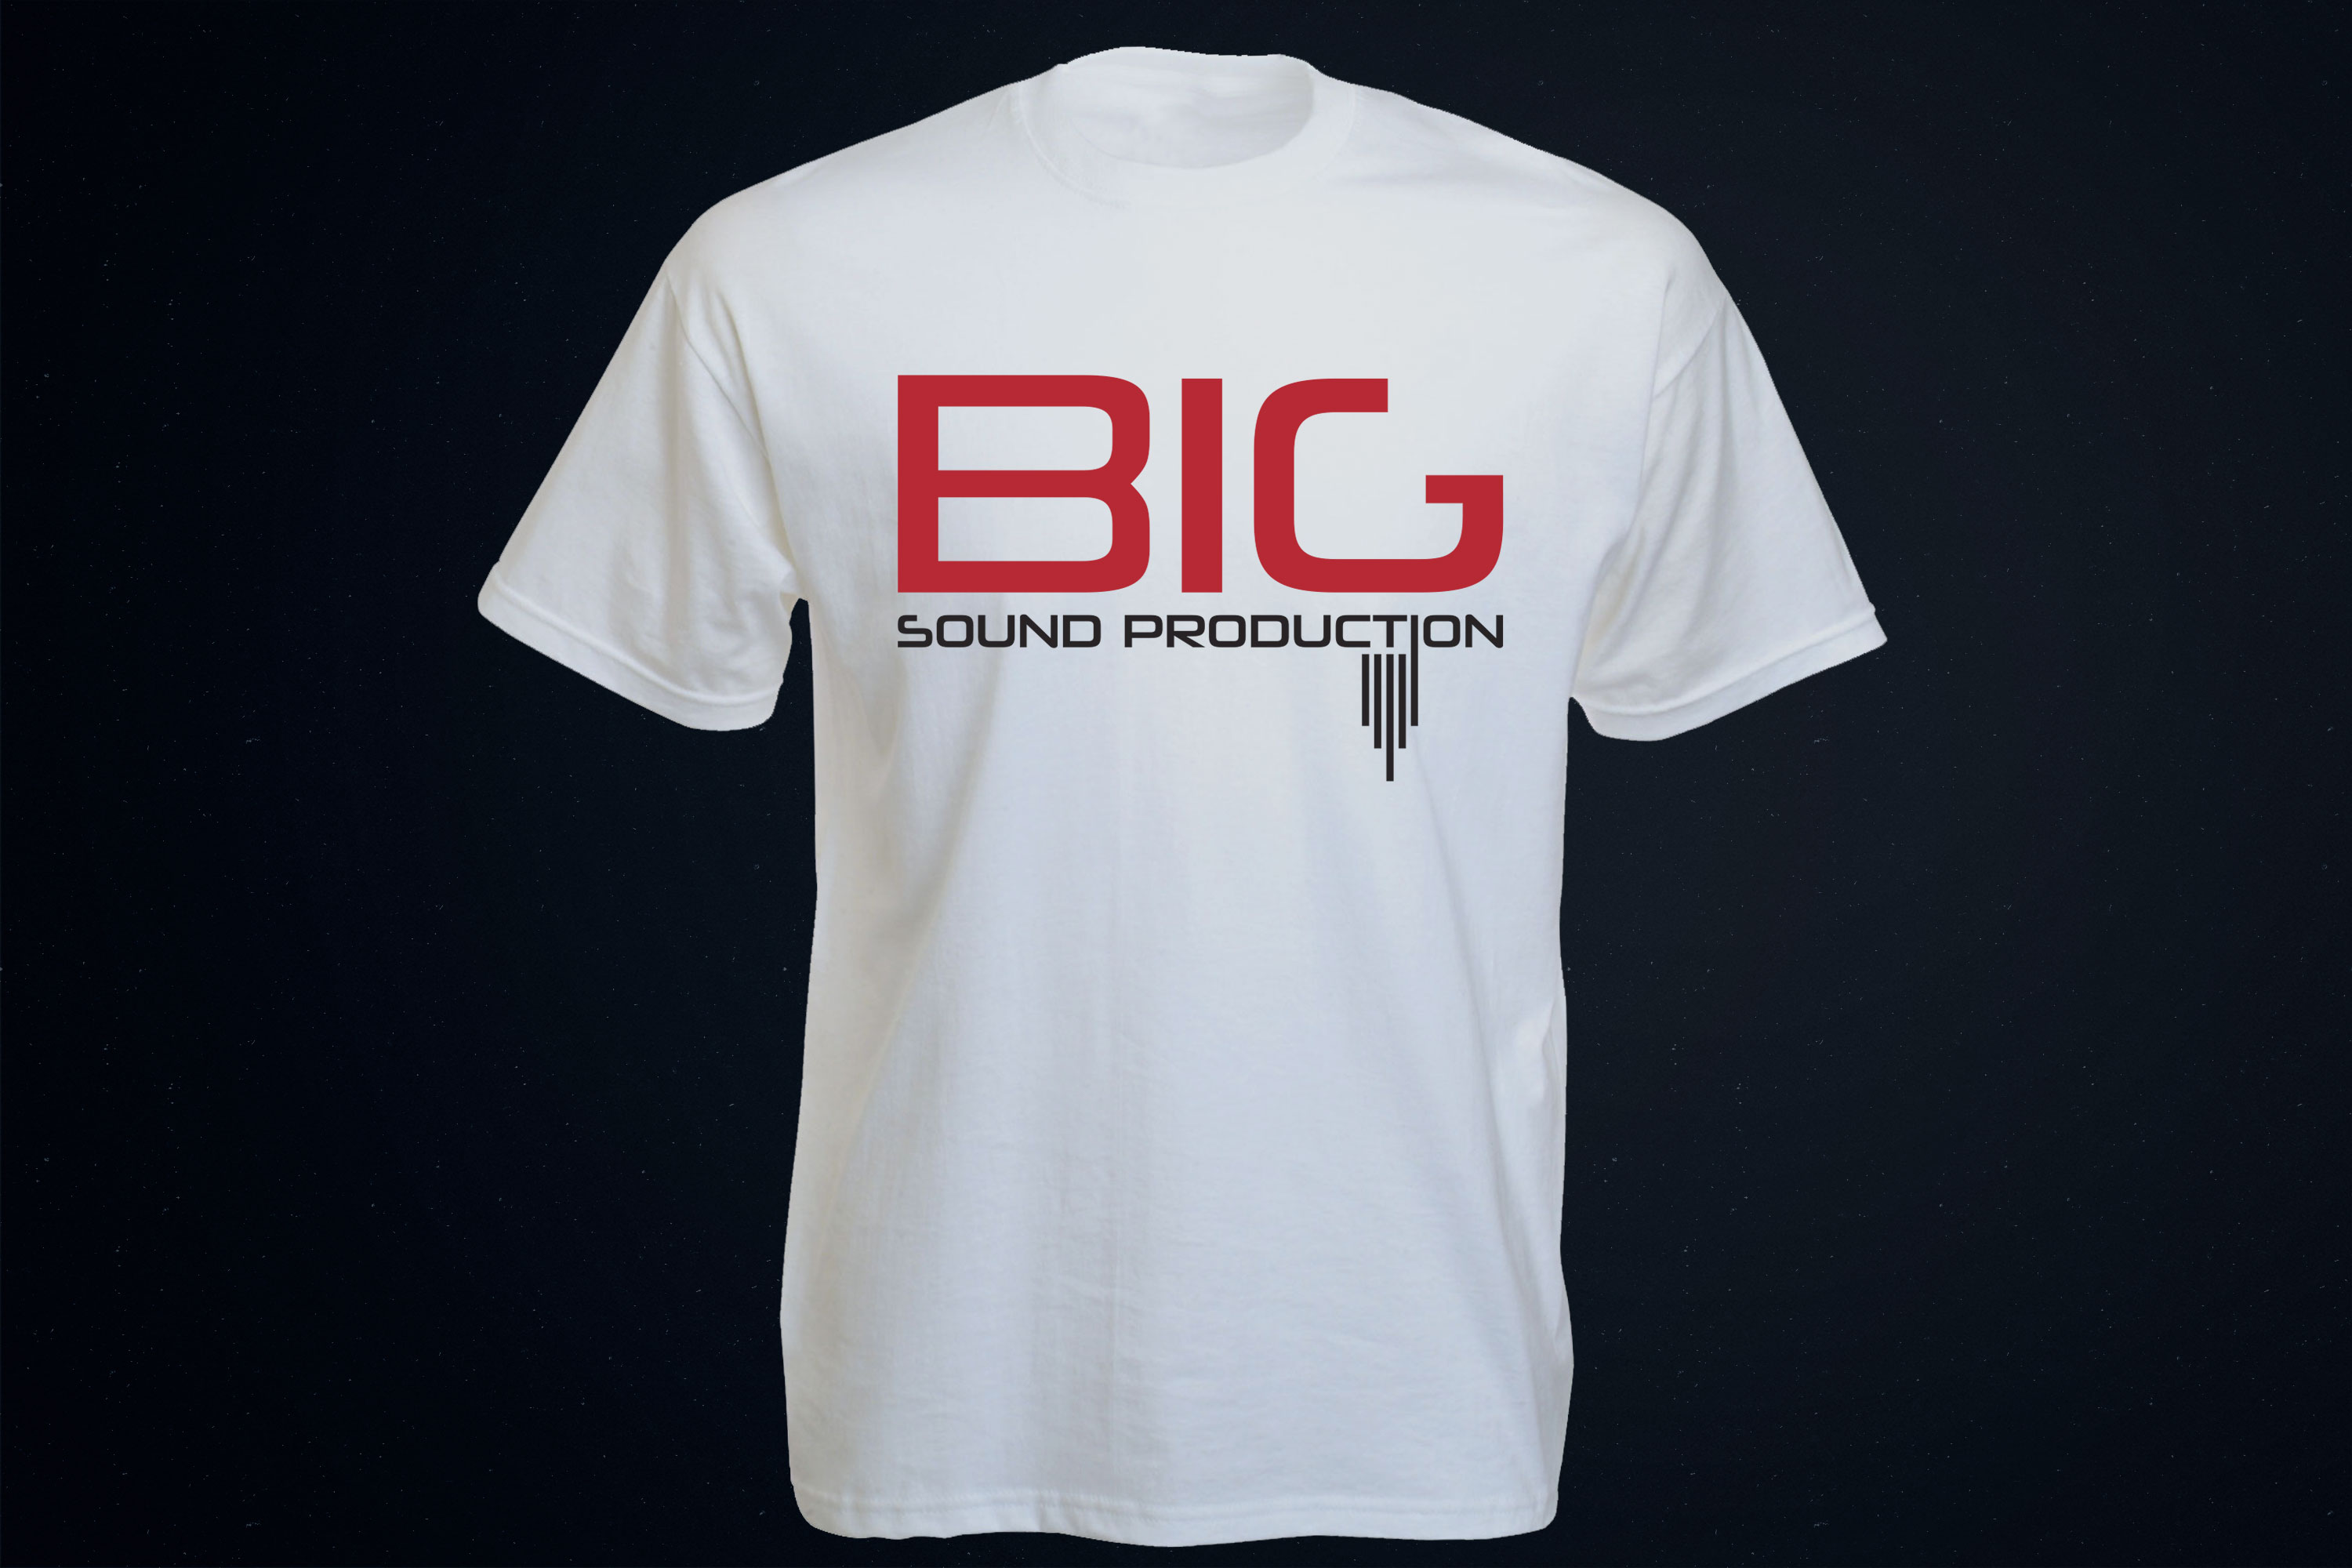 T-Shirt Big Sound Production offert